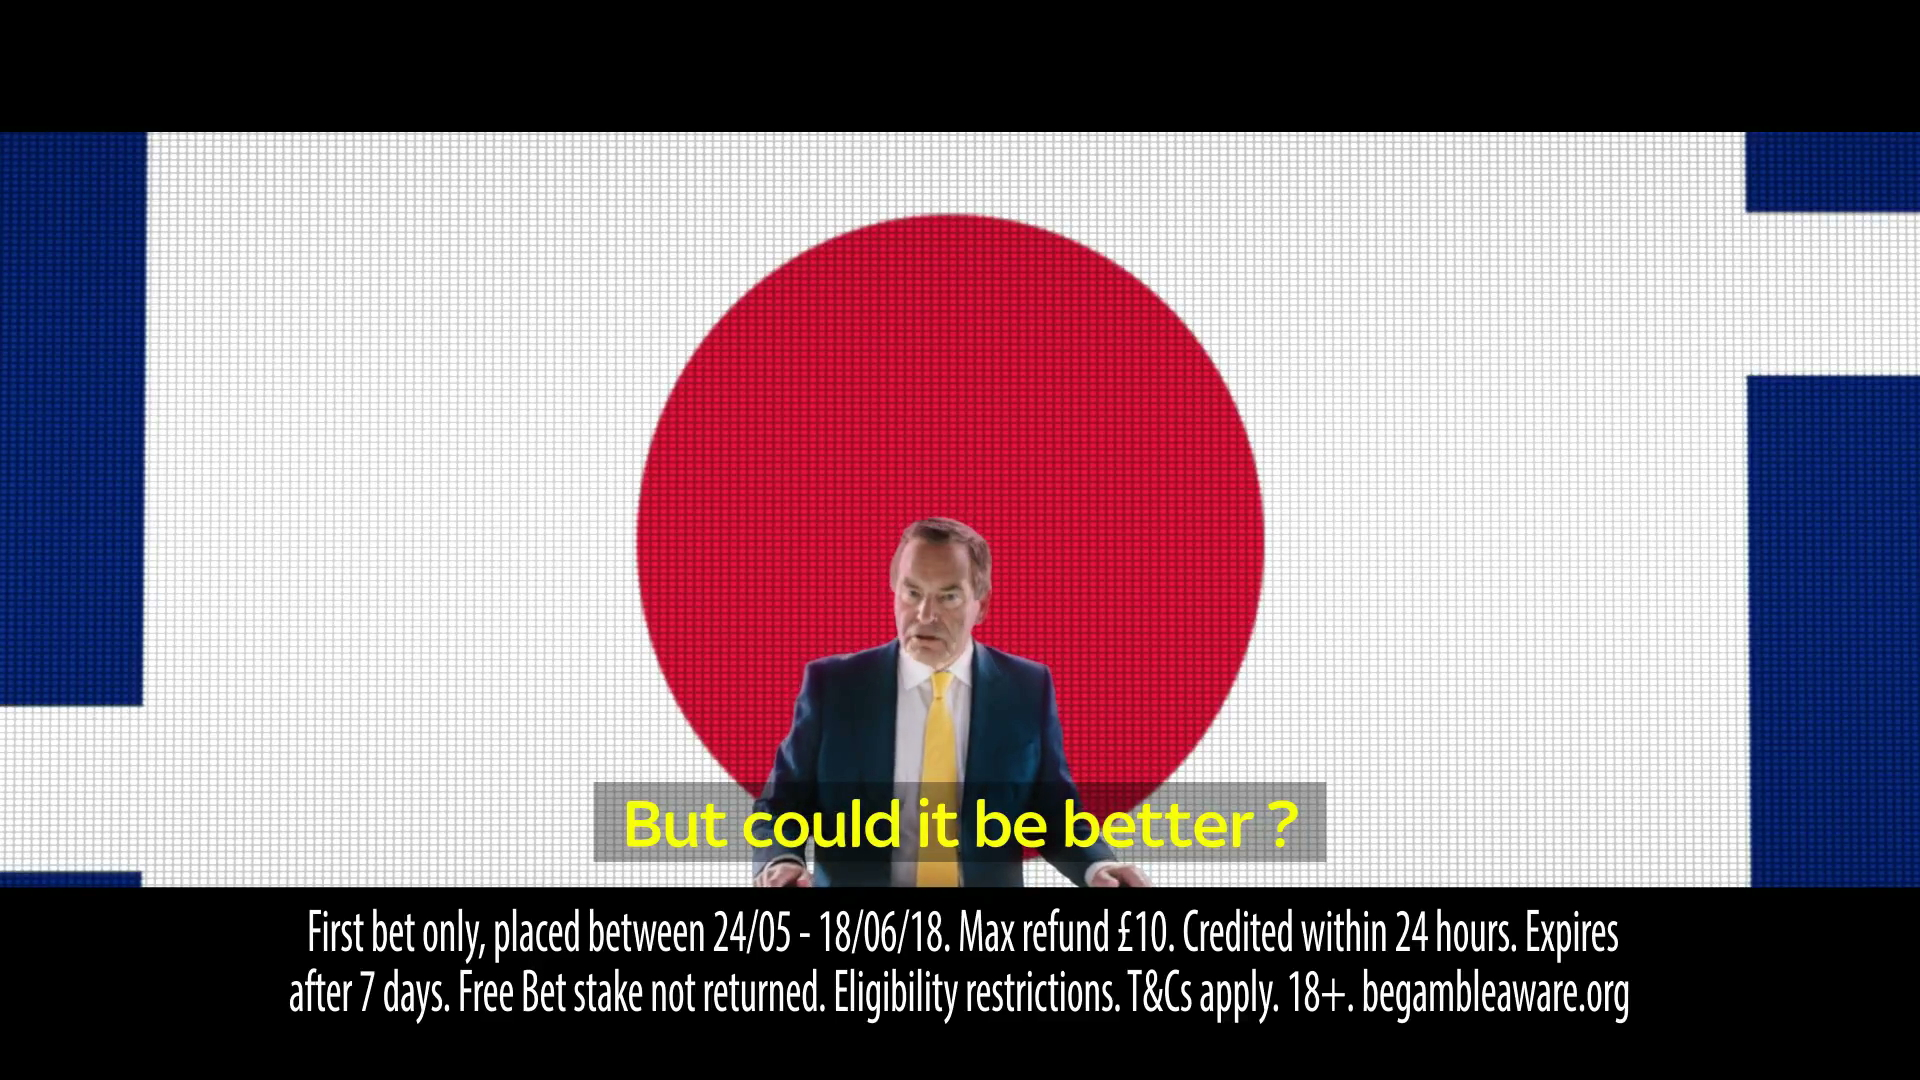 LanguageDirectionSkyBetGlobalWorldCup-JeffStelling-Japanese